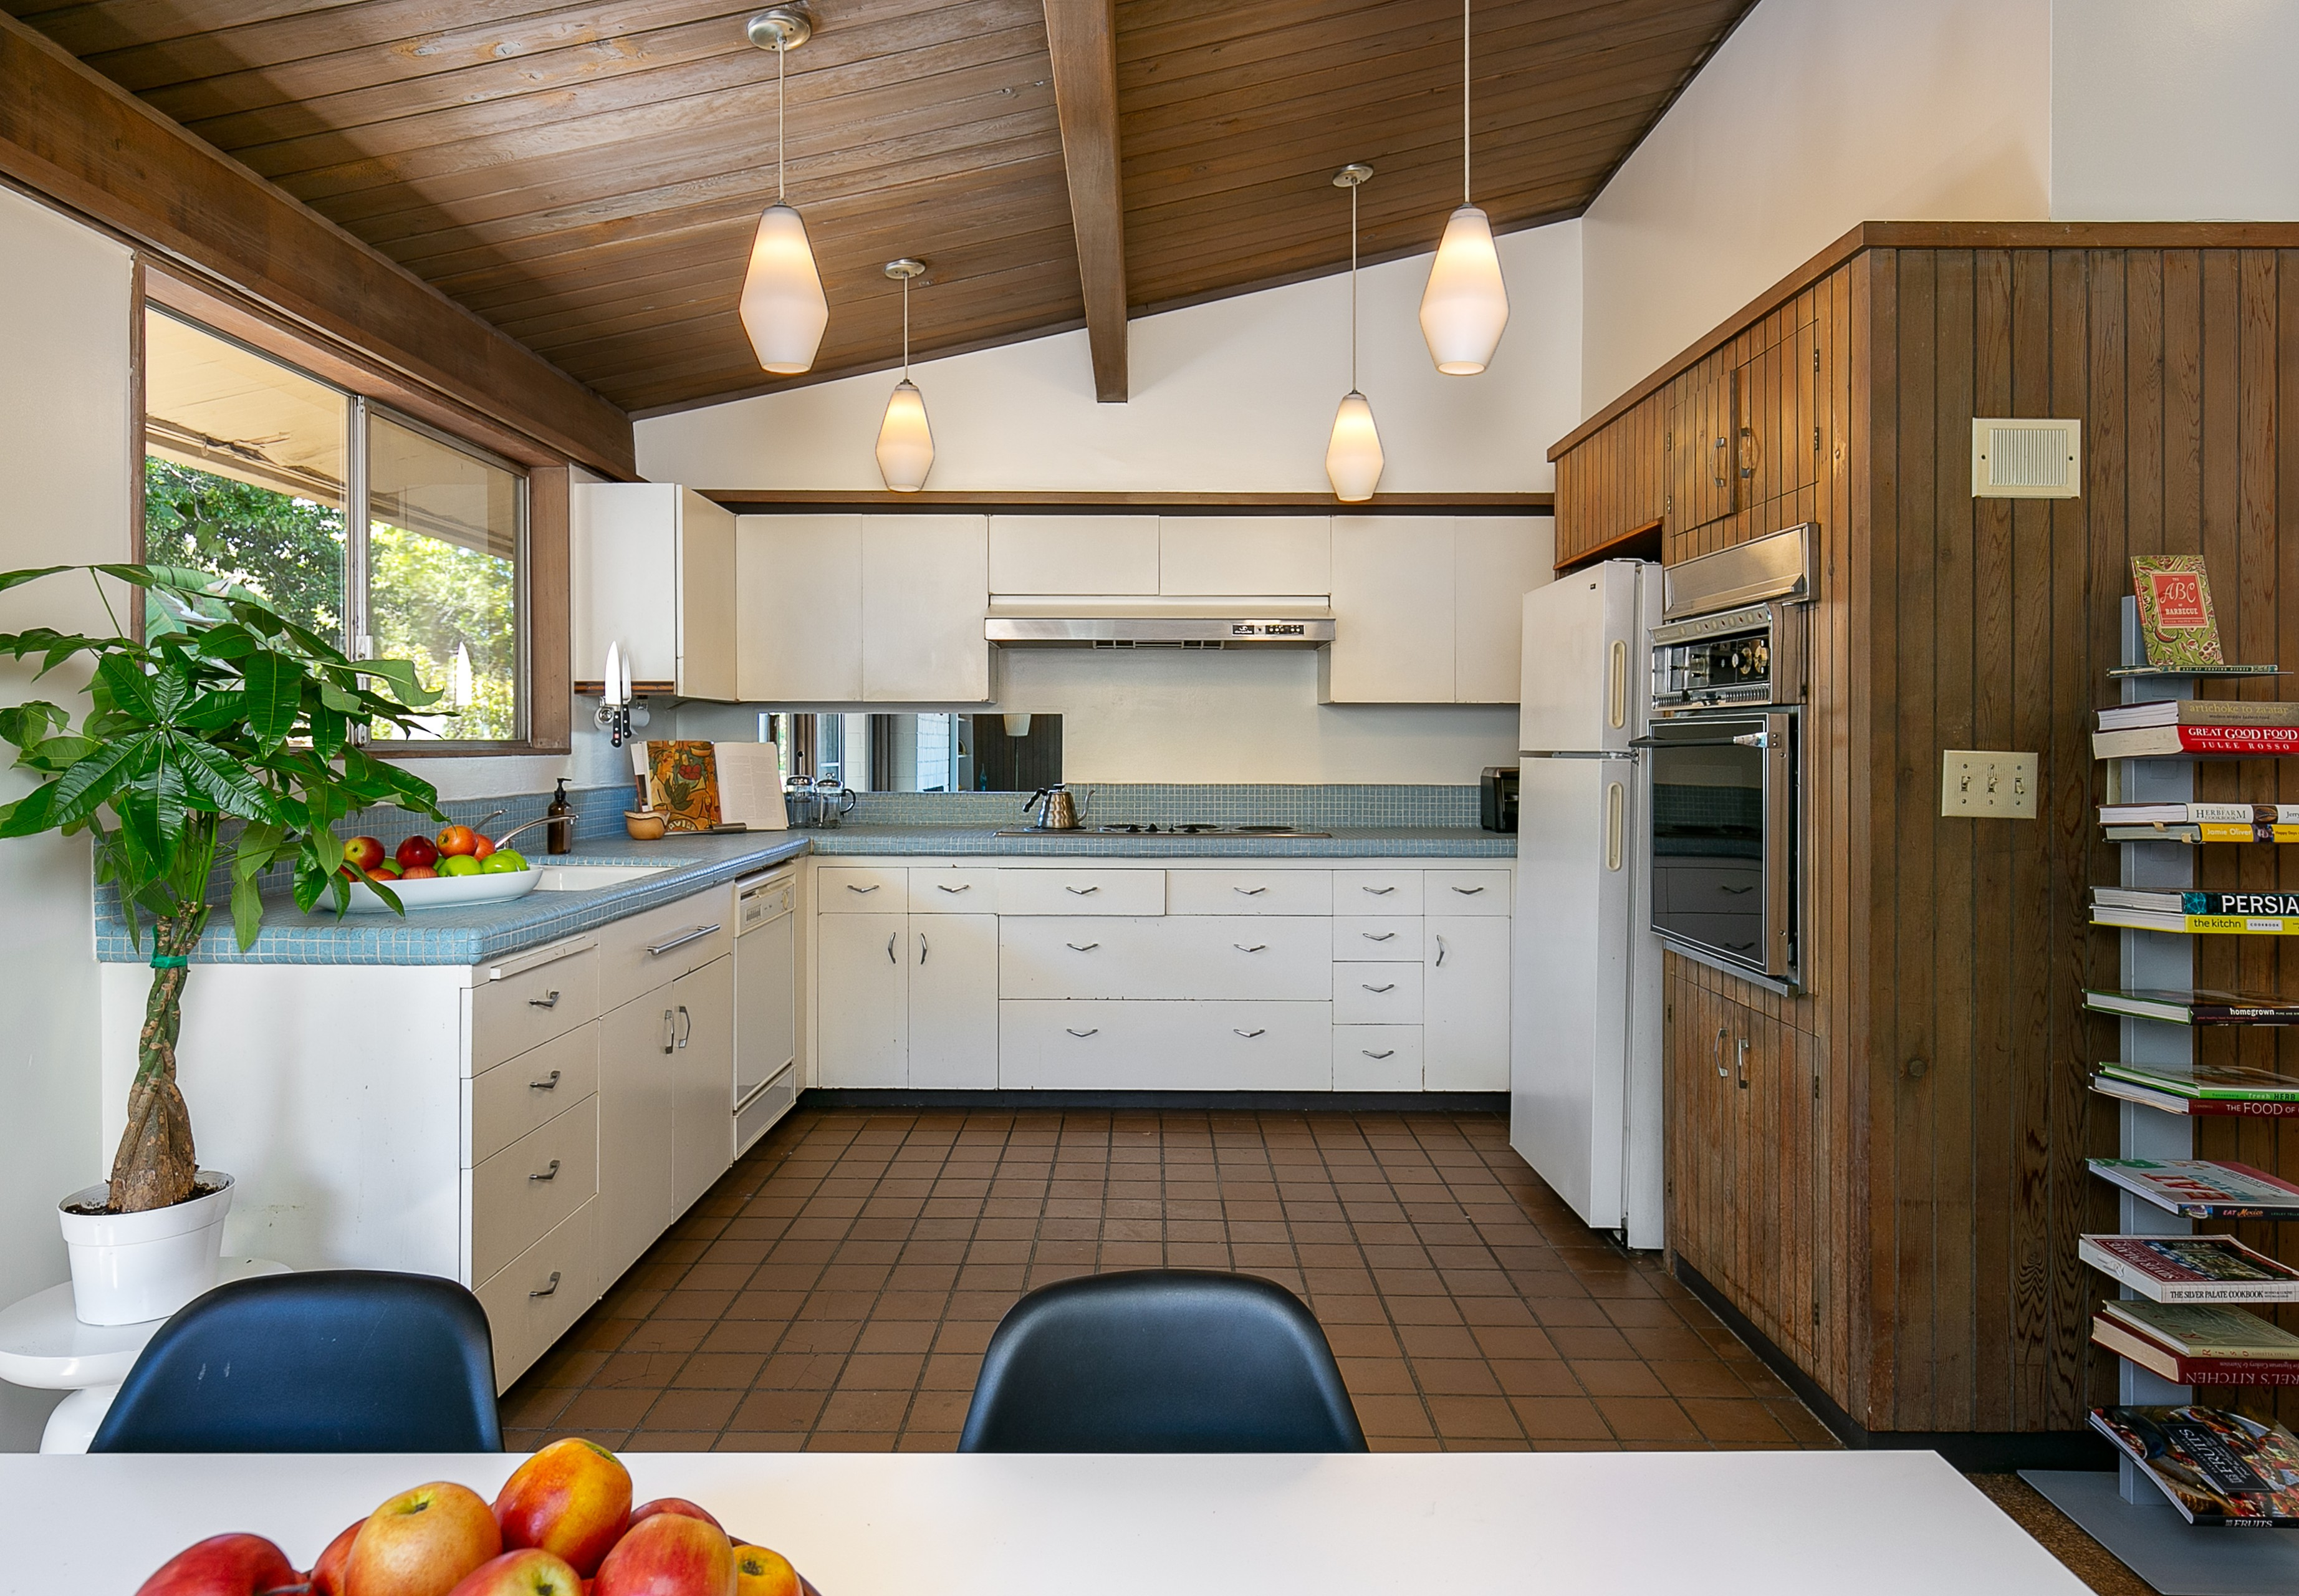 75 Beautiful Kitchen With Tile Countertops Pictures Ideas November 2020 Houzz